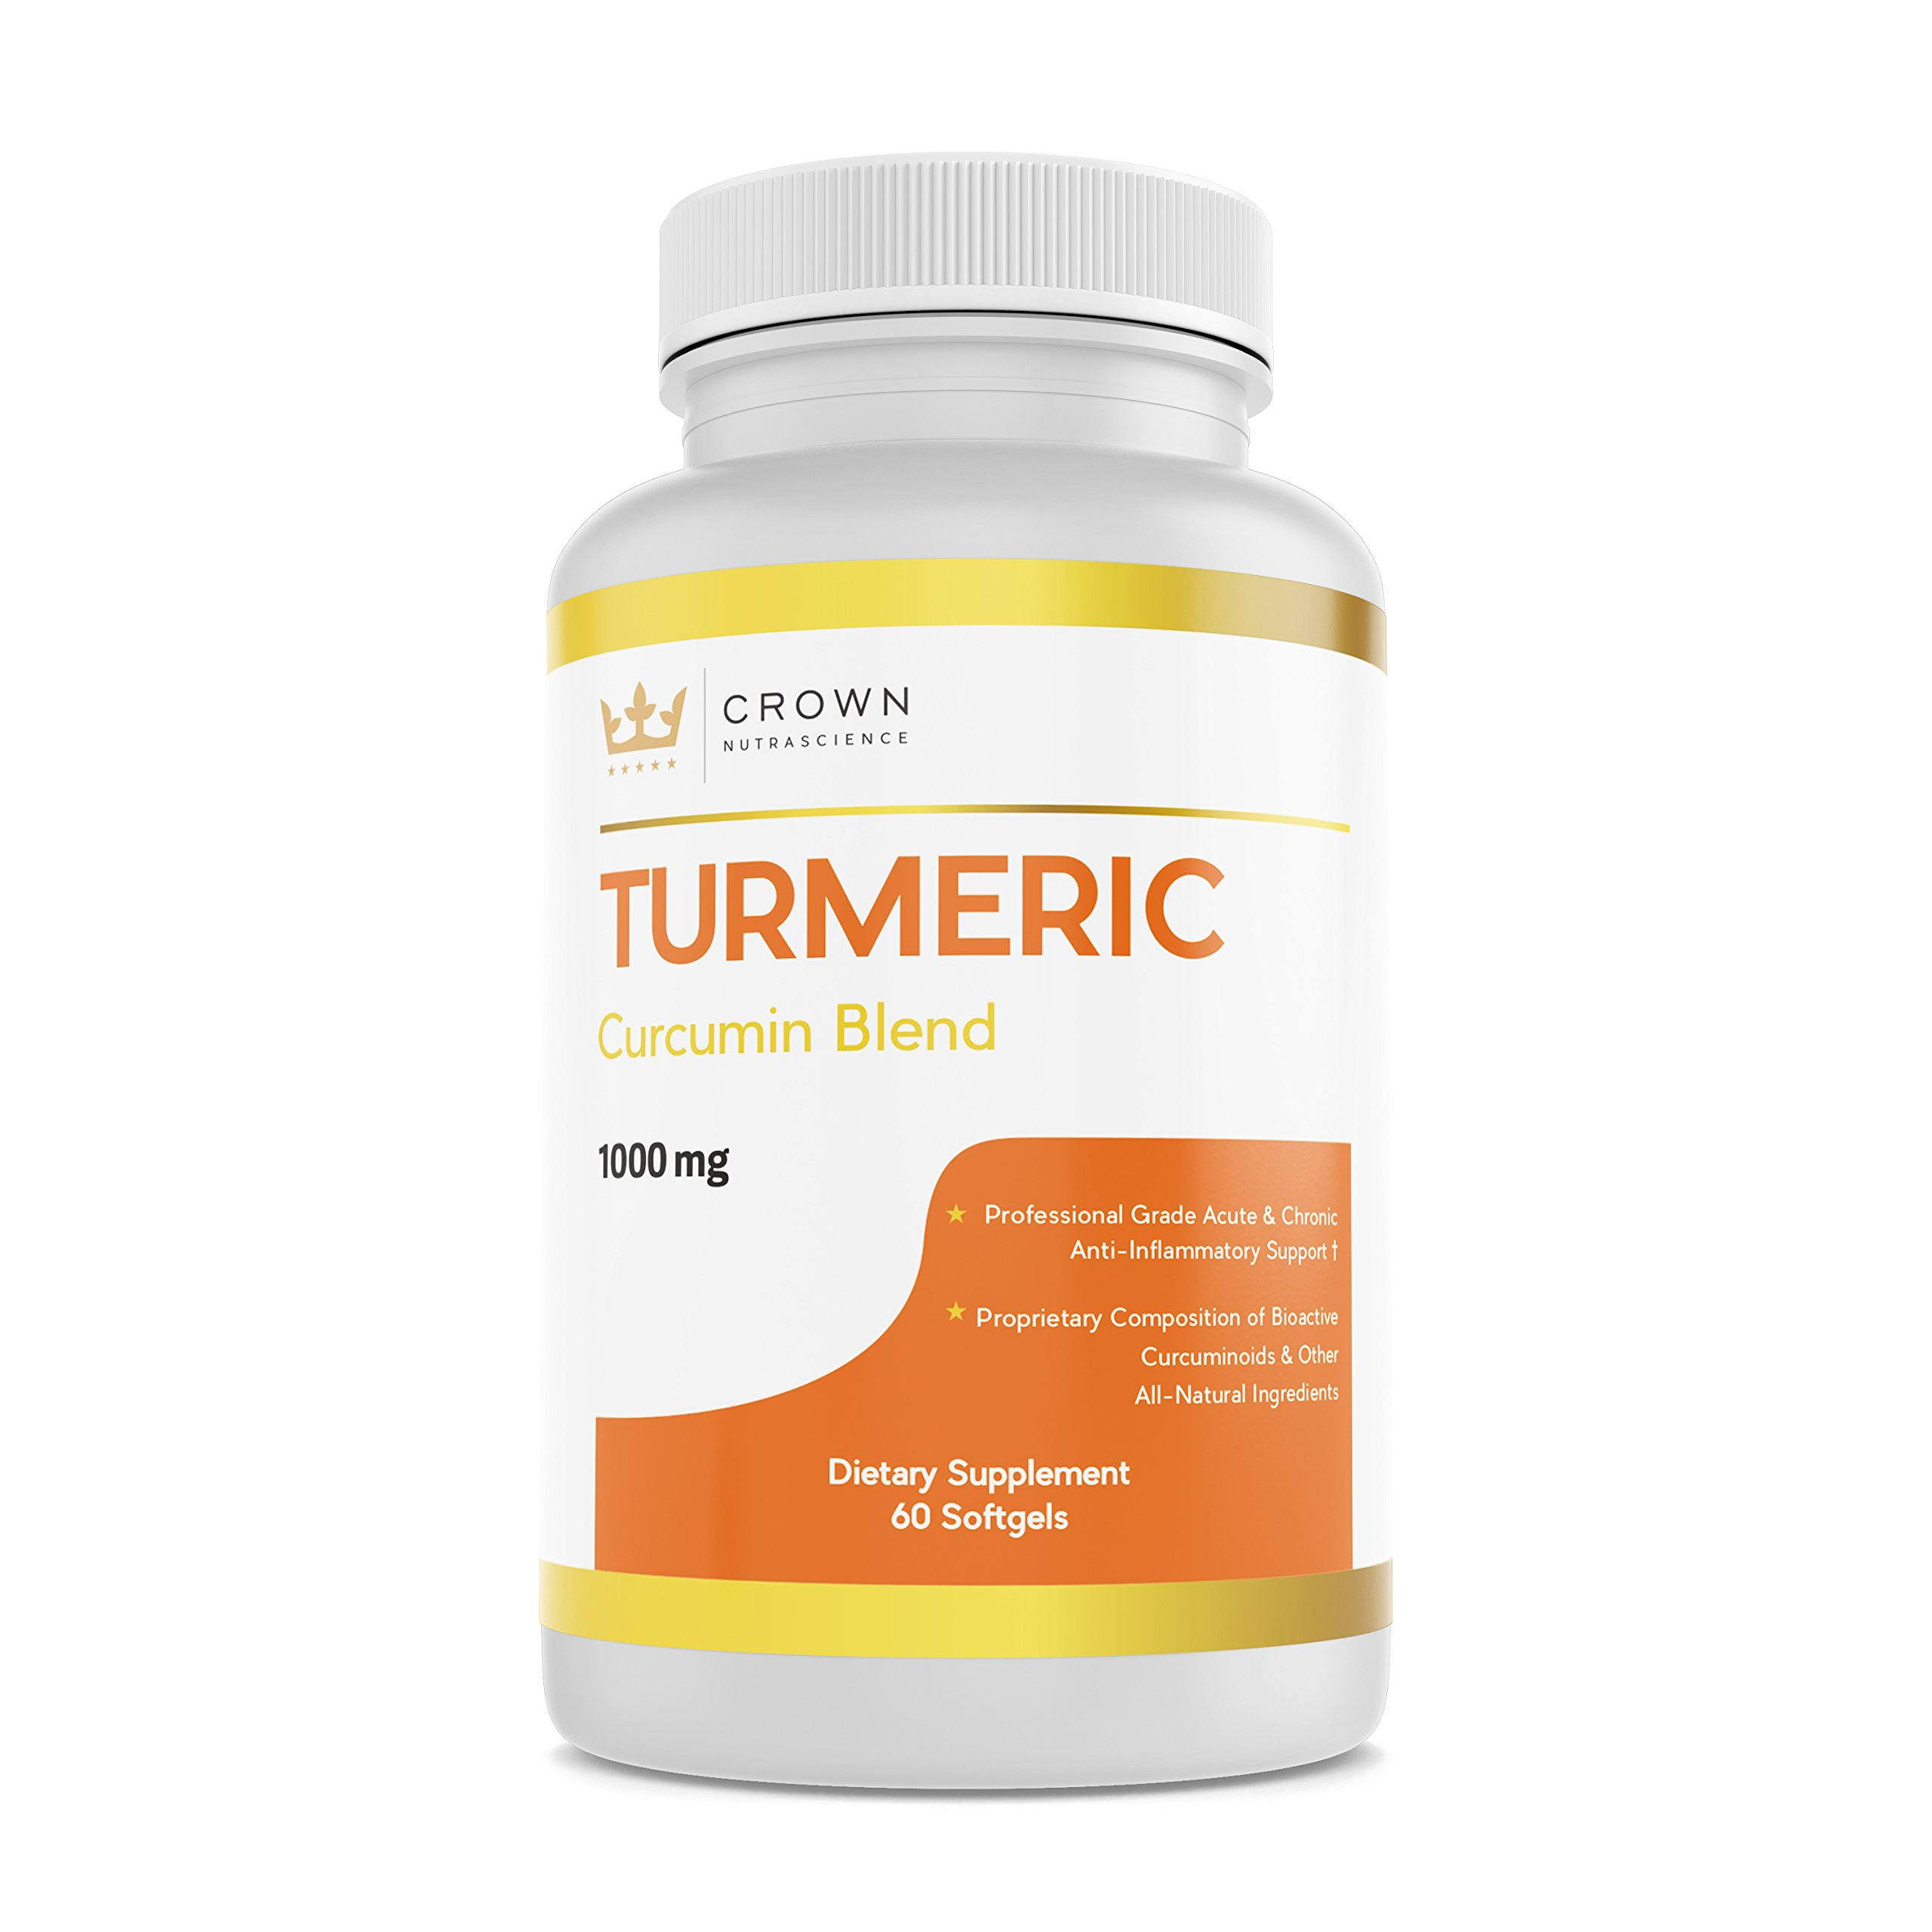 Turmeric Curcumin 1000mg, 60 Softgels, Crown NutraScience - 380mg Turmeric Extracts (Curcuminoid Powder) per Single Softgel, Emulsified for Maximum Absorption, Premium Joint Support & Pain Relief